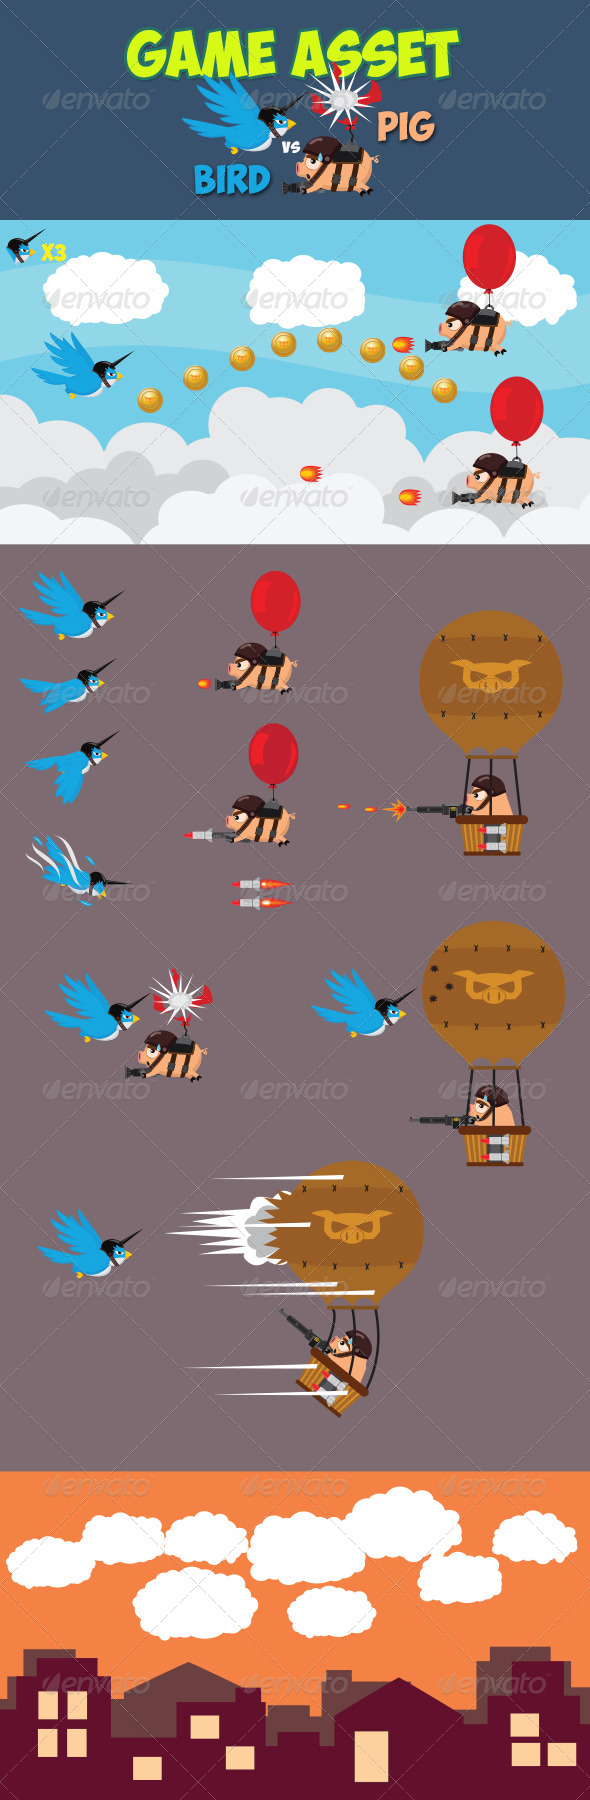 GraphicRiver Bird Versus Pig Game Asset 7112170